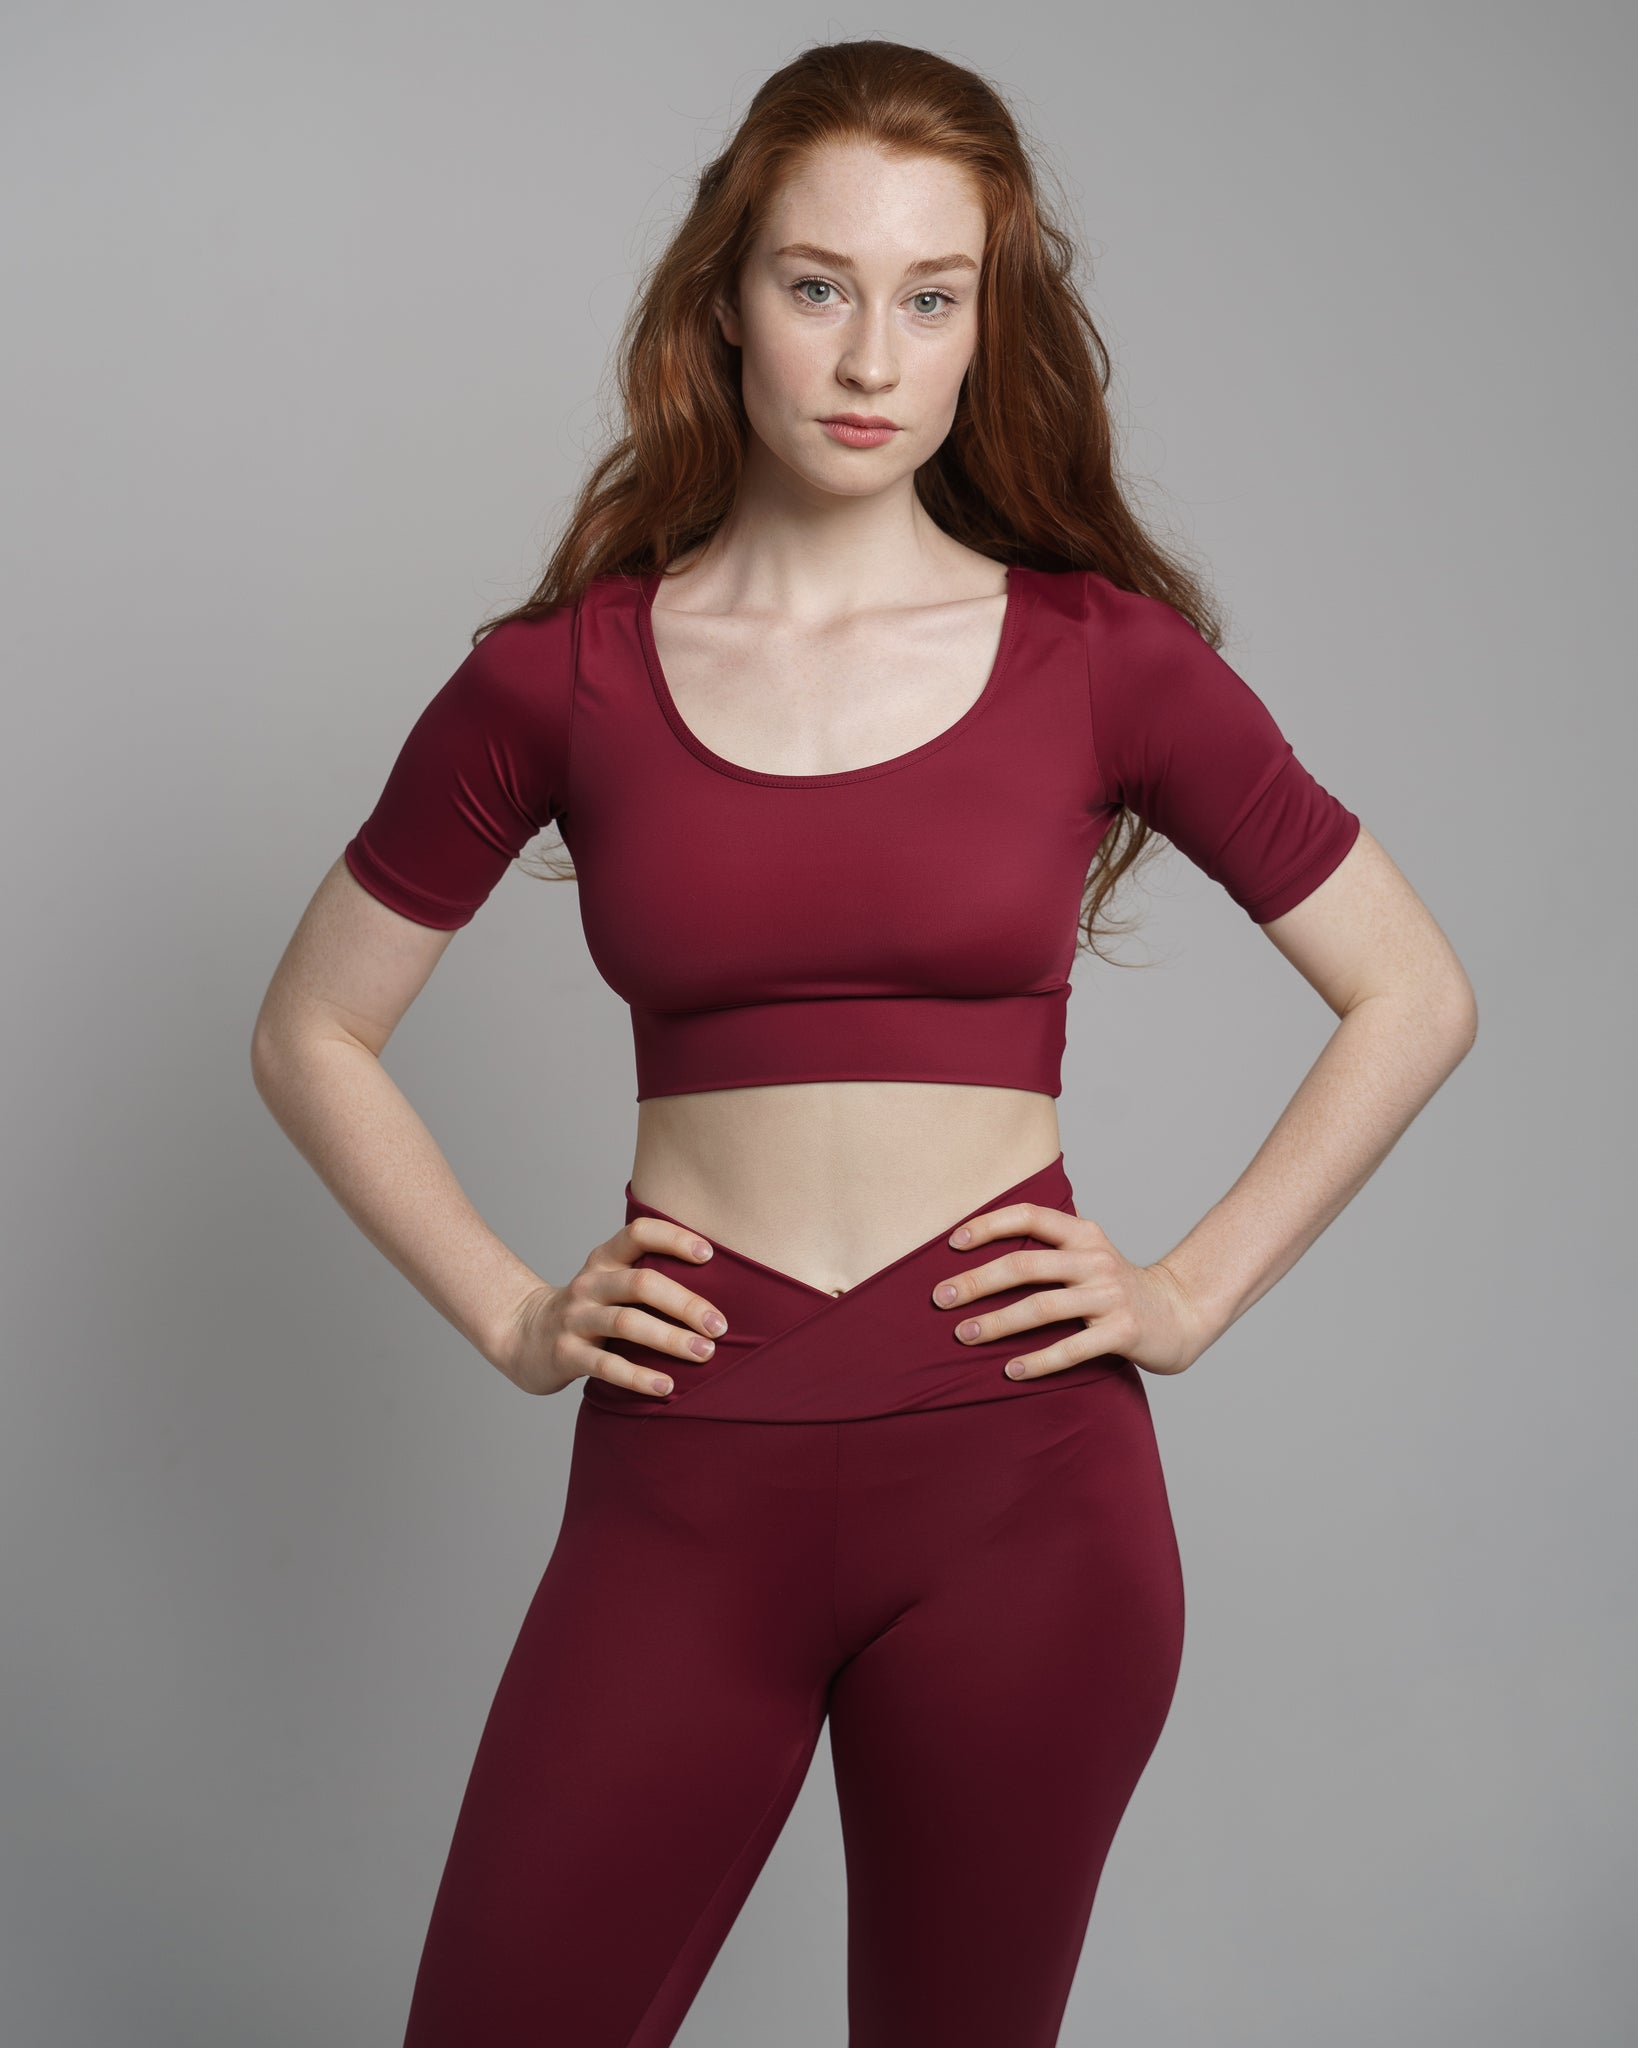 Sarah Power crop top